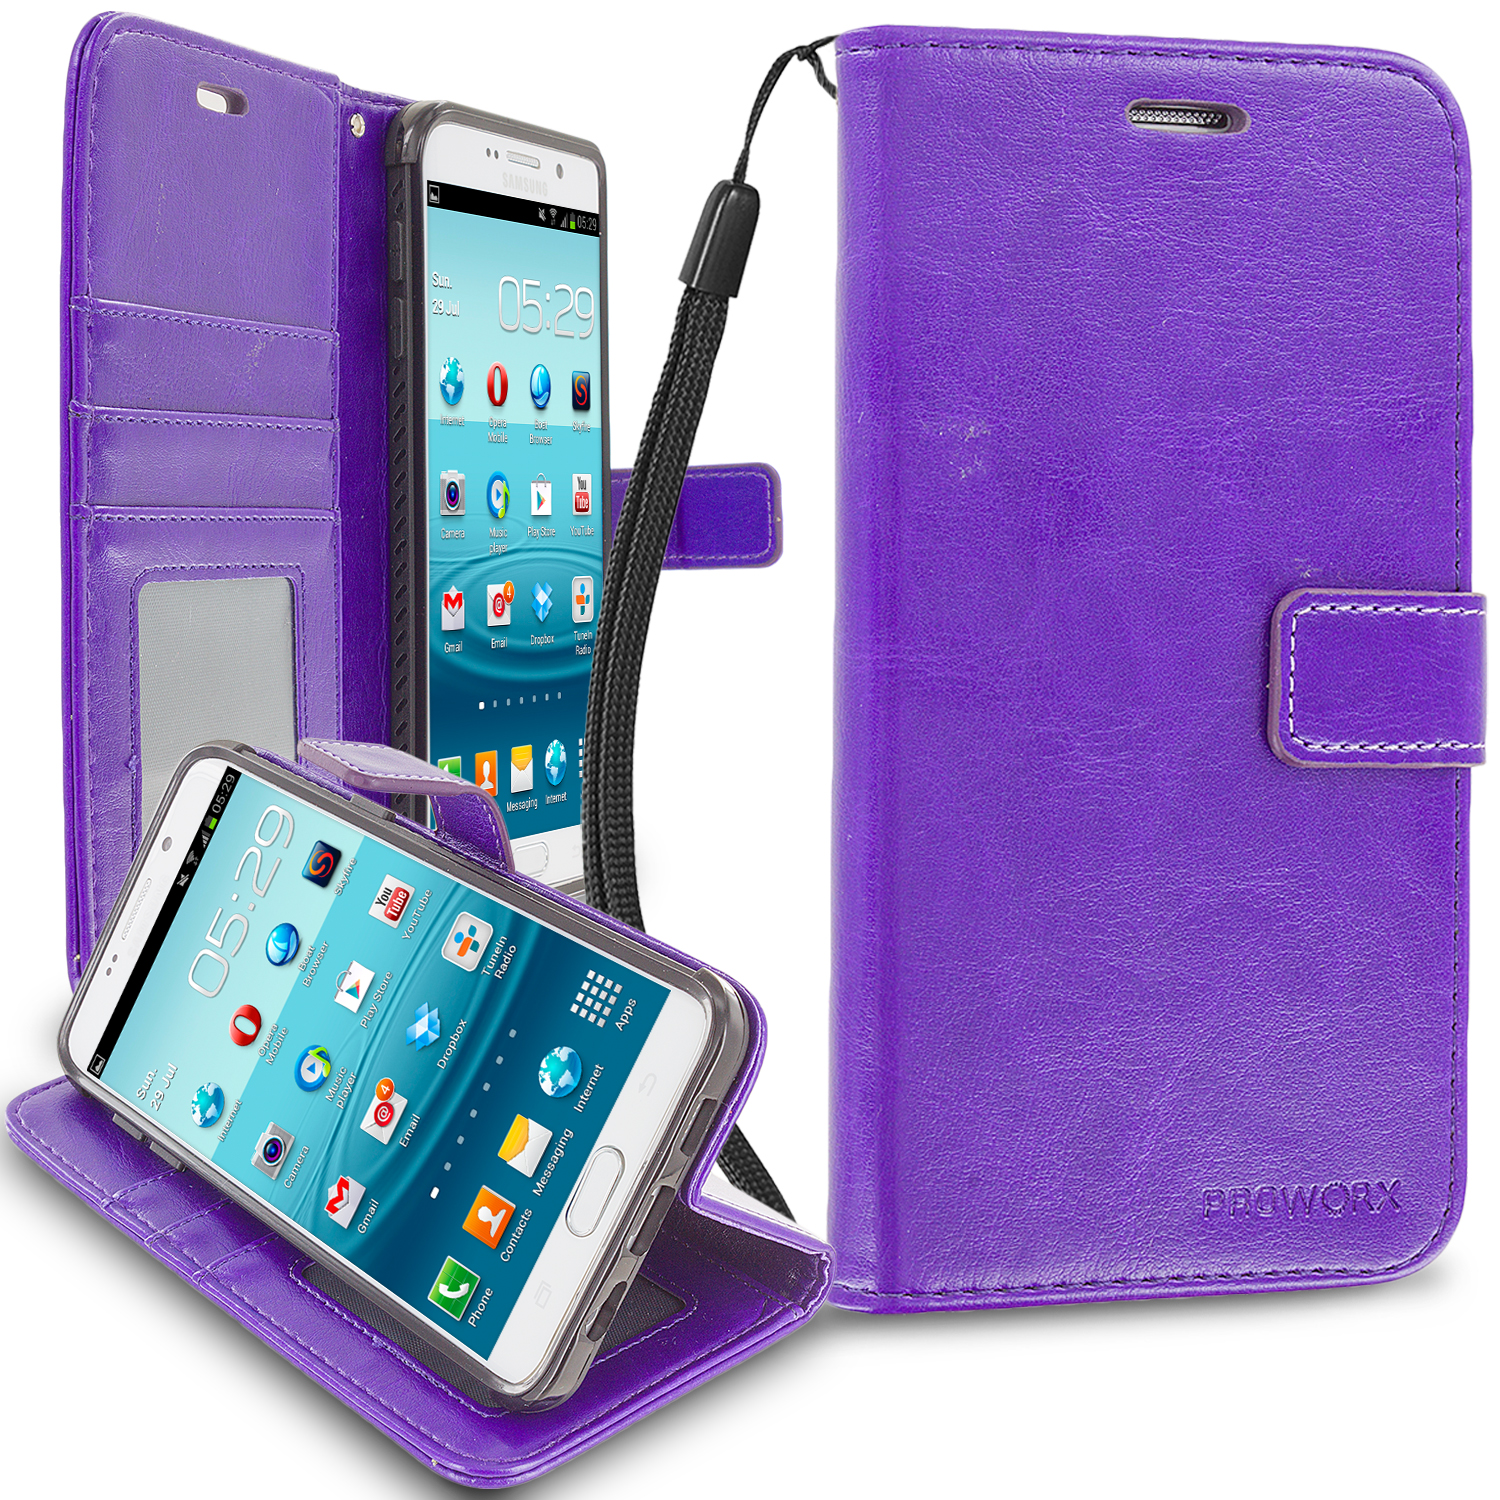 Samsung Galaxy S6 Edge Purple ProWorx Wallet Case Luxury PU Leather Case Cover With Card Slots & Stand